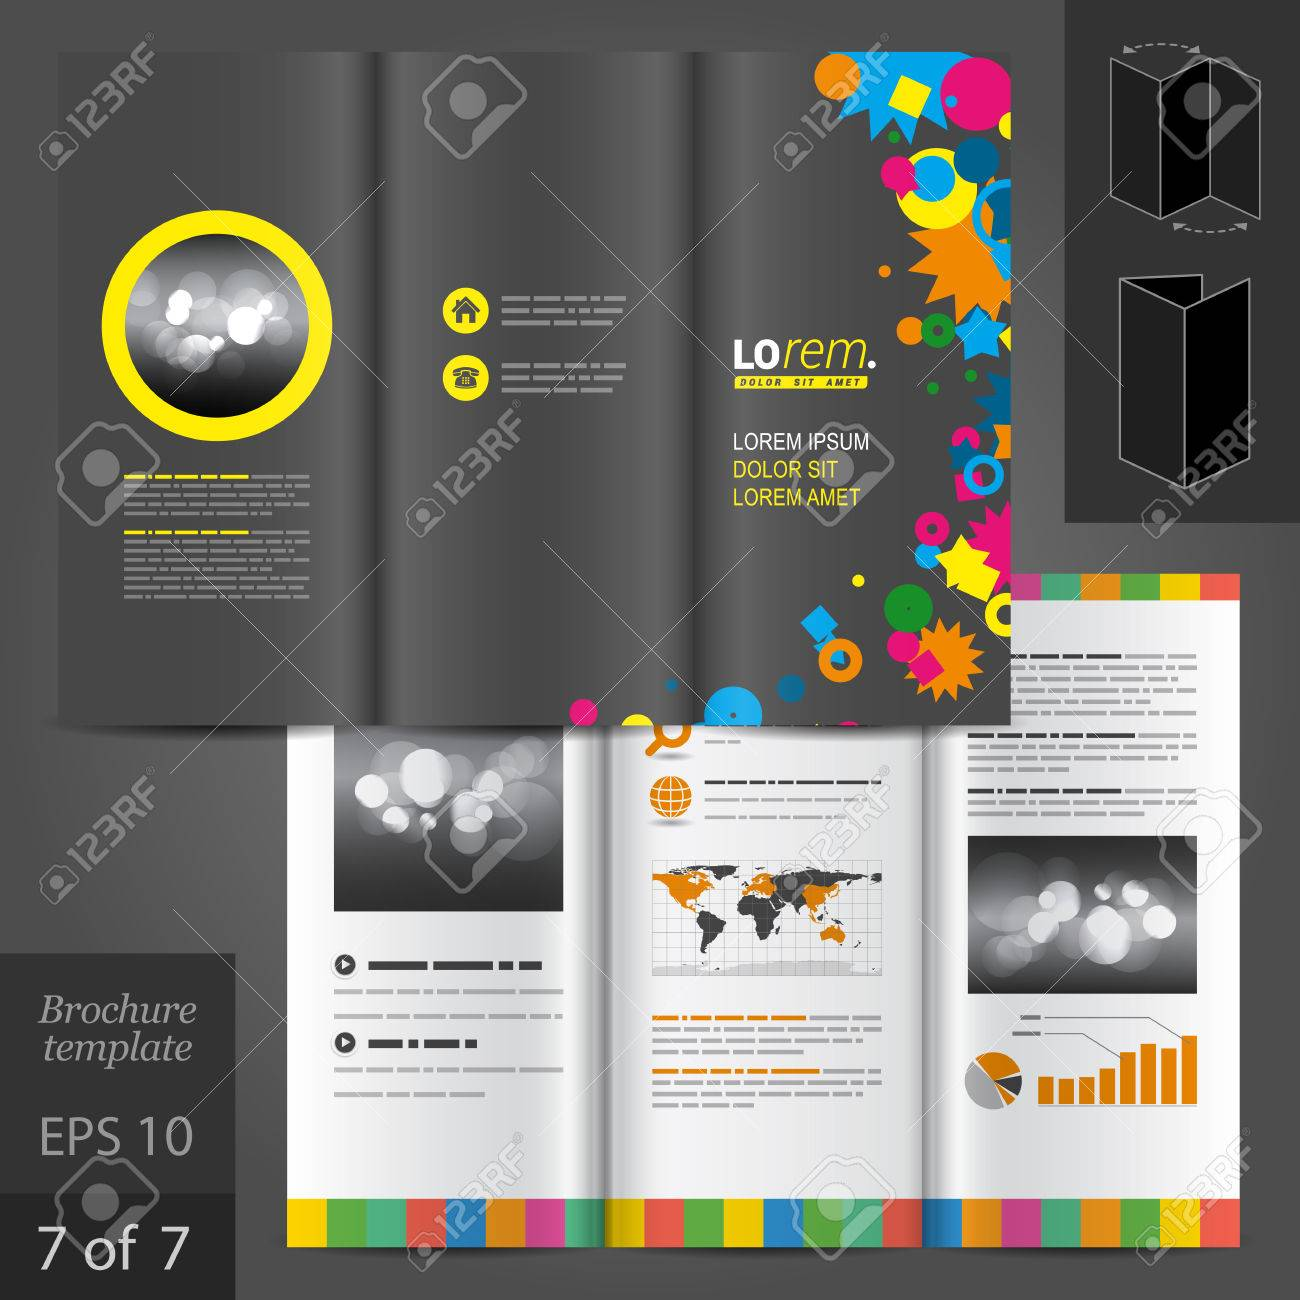 creative black brochure template design with color art elements creative black brochure template design with color